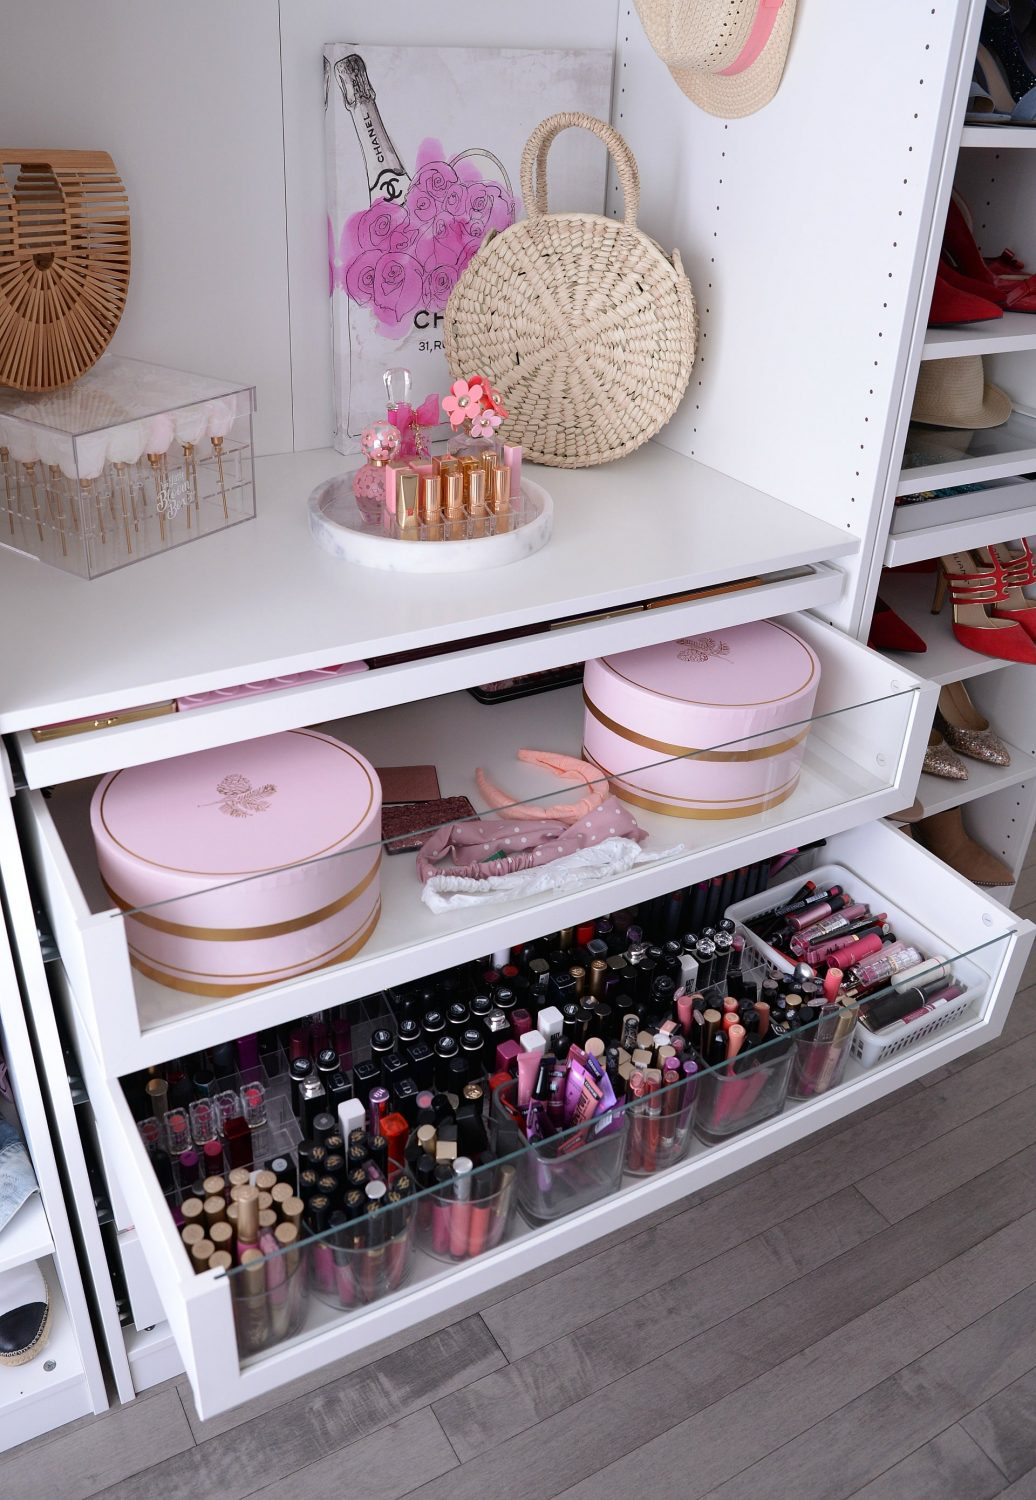 IKEA KOMPLEMENT Drawers